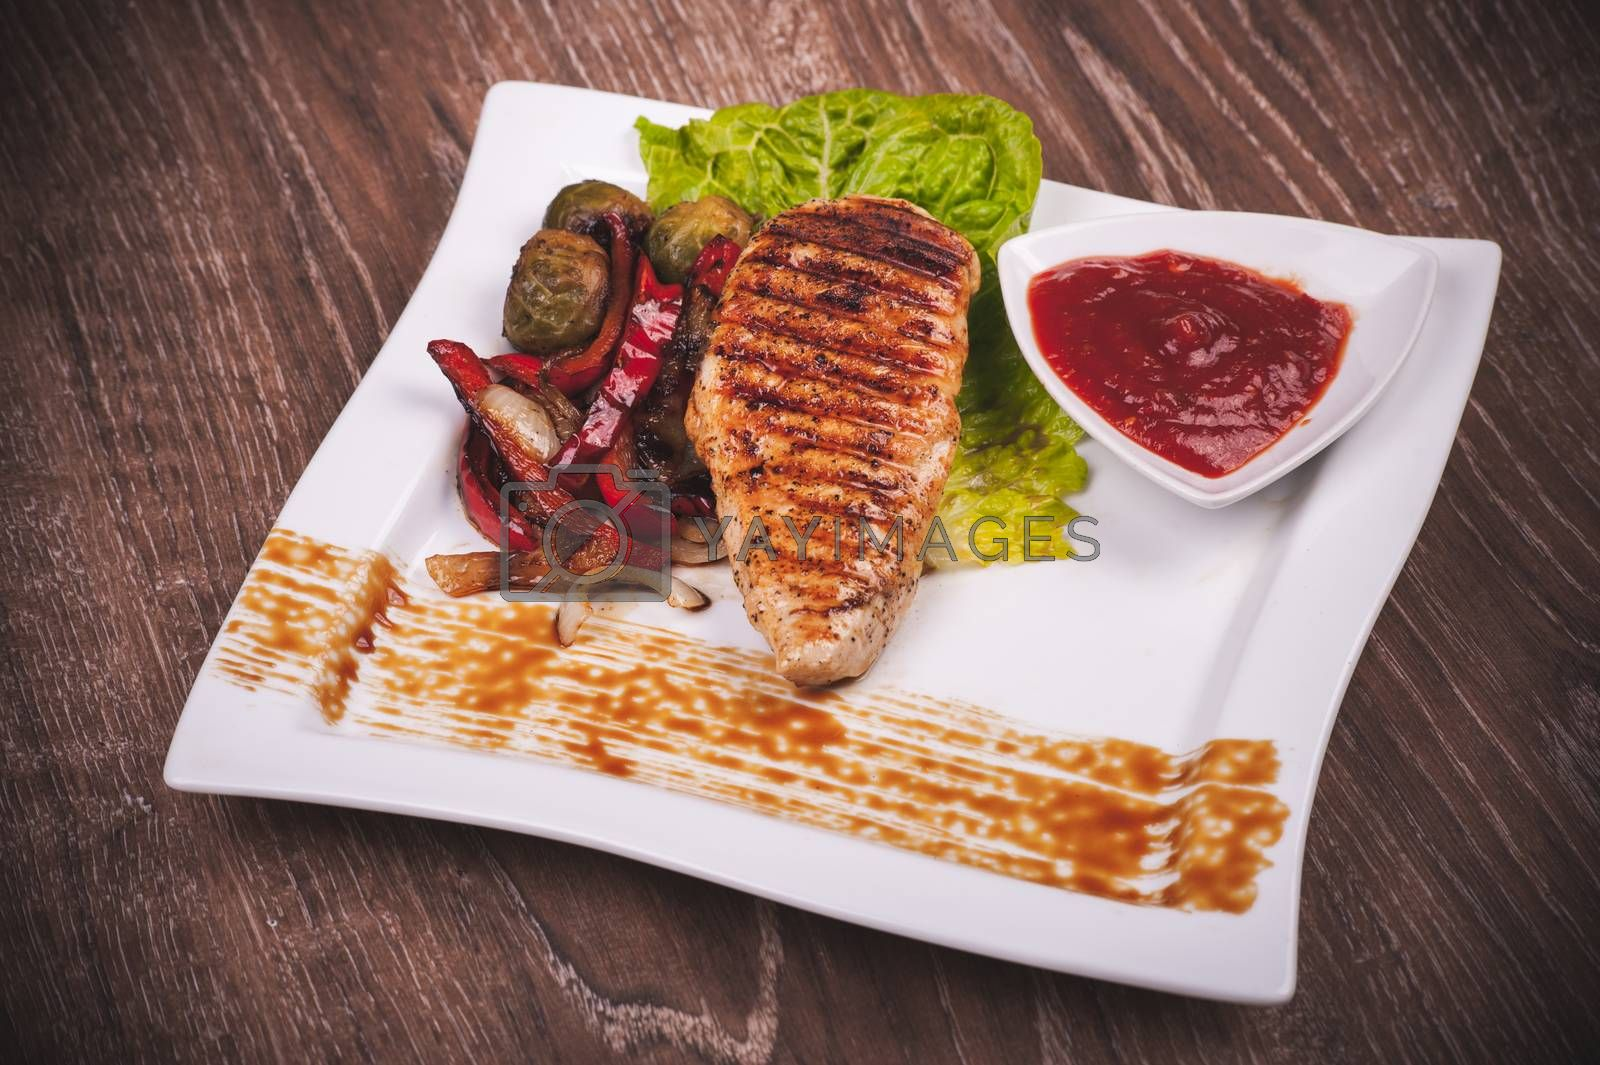 Grilled fillet of chicken with vegetables and sauce